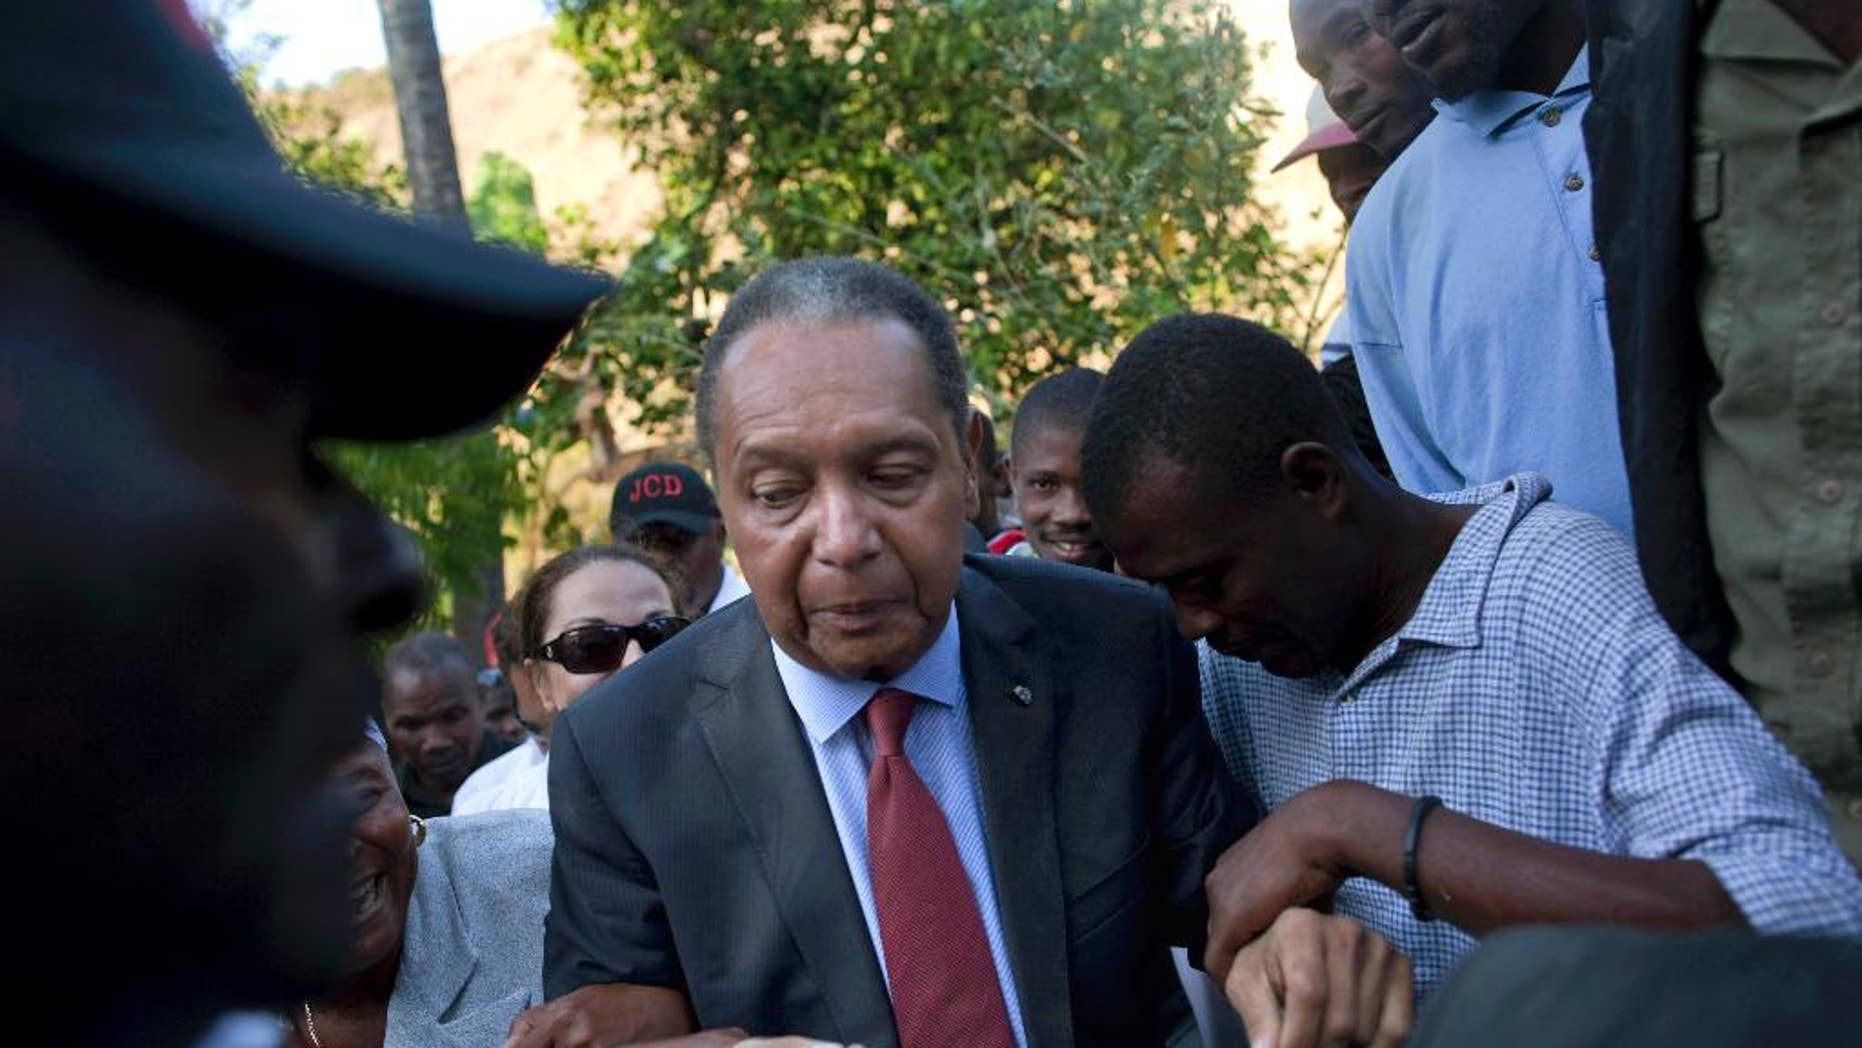 """FILE - In this Feb. 8, 2011 file photo, former Haitian dictator Jean-Claude """"Baby Doc"""" Duvalier's supporters help him negotiate an uneven path during a visit to his mother's hometown and grave site in Leogane, Haiti. Duvalier, the self-designated """"president-for-life"""" who died Oct. 4, 2014, from an apparent heart attack, will not get a formal state funeral, but have a """"simple, private,""""funeral arranged by friends and family in Haiti, attorney Reynolds Georges said in an interview. (AP Photo/Ramon Espinosa, File)"""